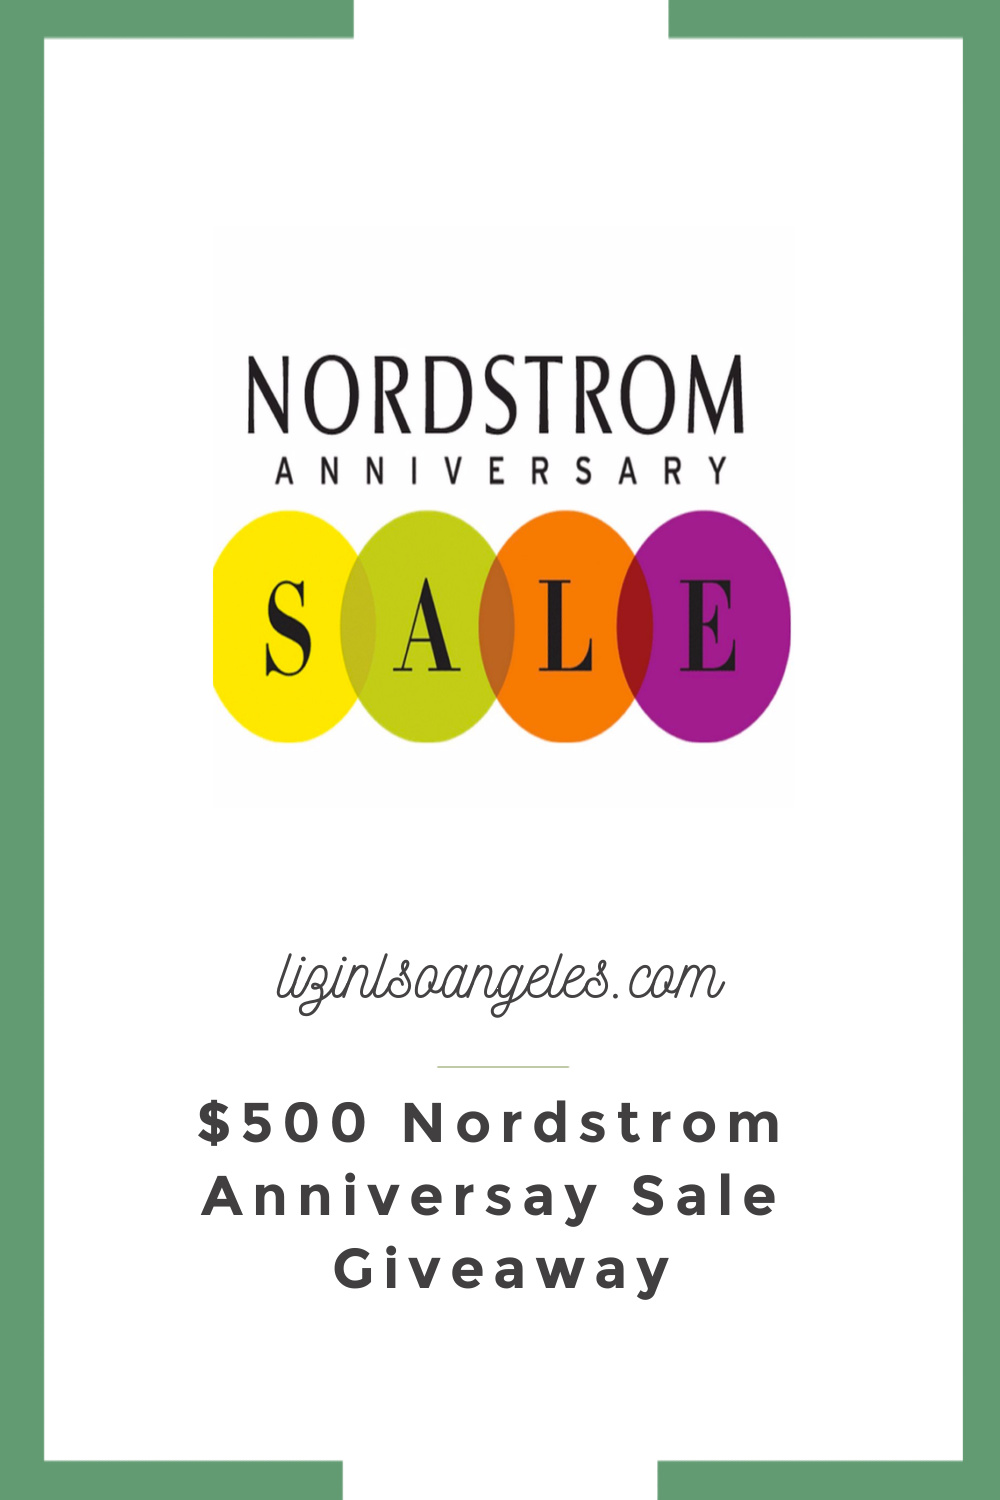 The Ultimate Nordstrom Giveaway, a blog post by Liz in Los Angeles, Los Angeles Lifestyle Blogger, an image of Nordstrom Anniversary Sale